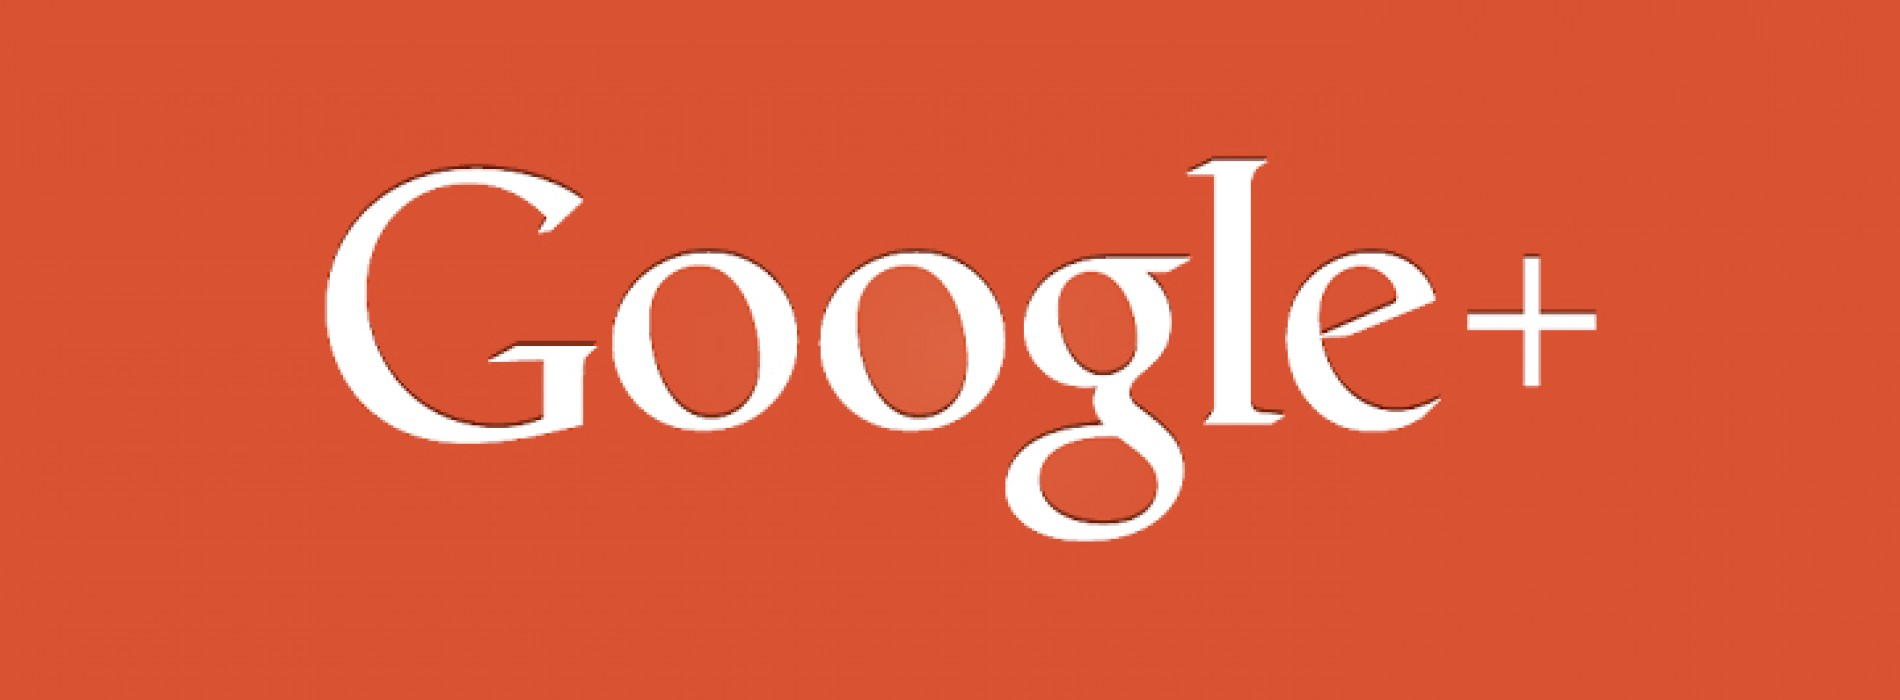 Google+ app update focuses on photos, posts, profiles and communities